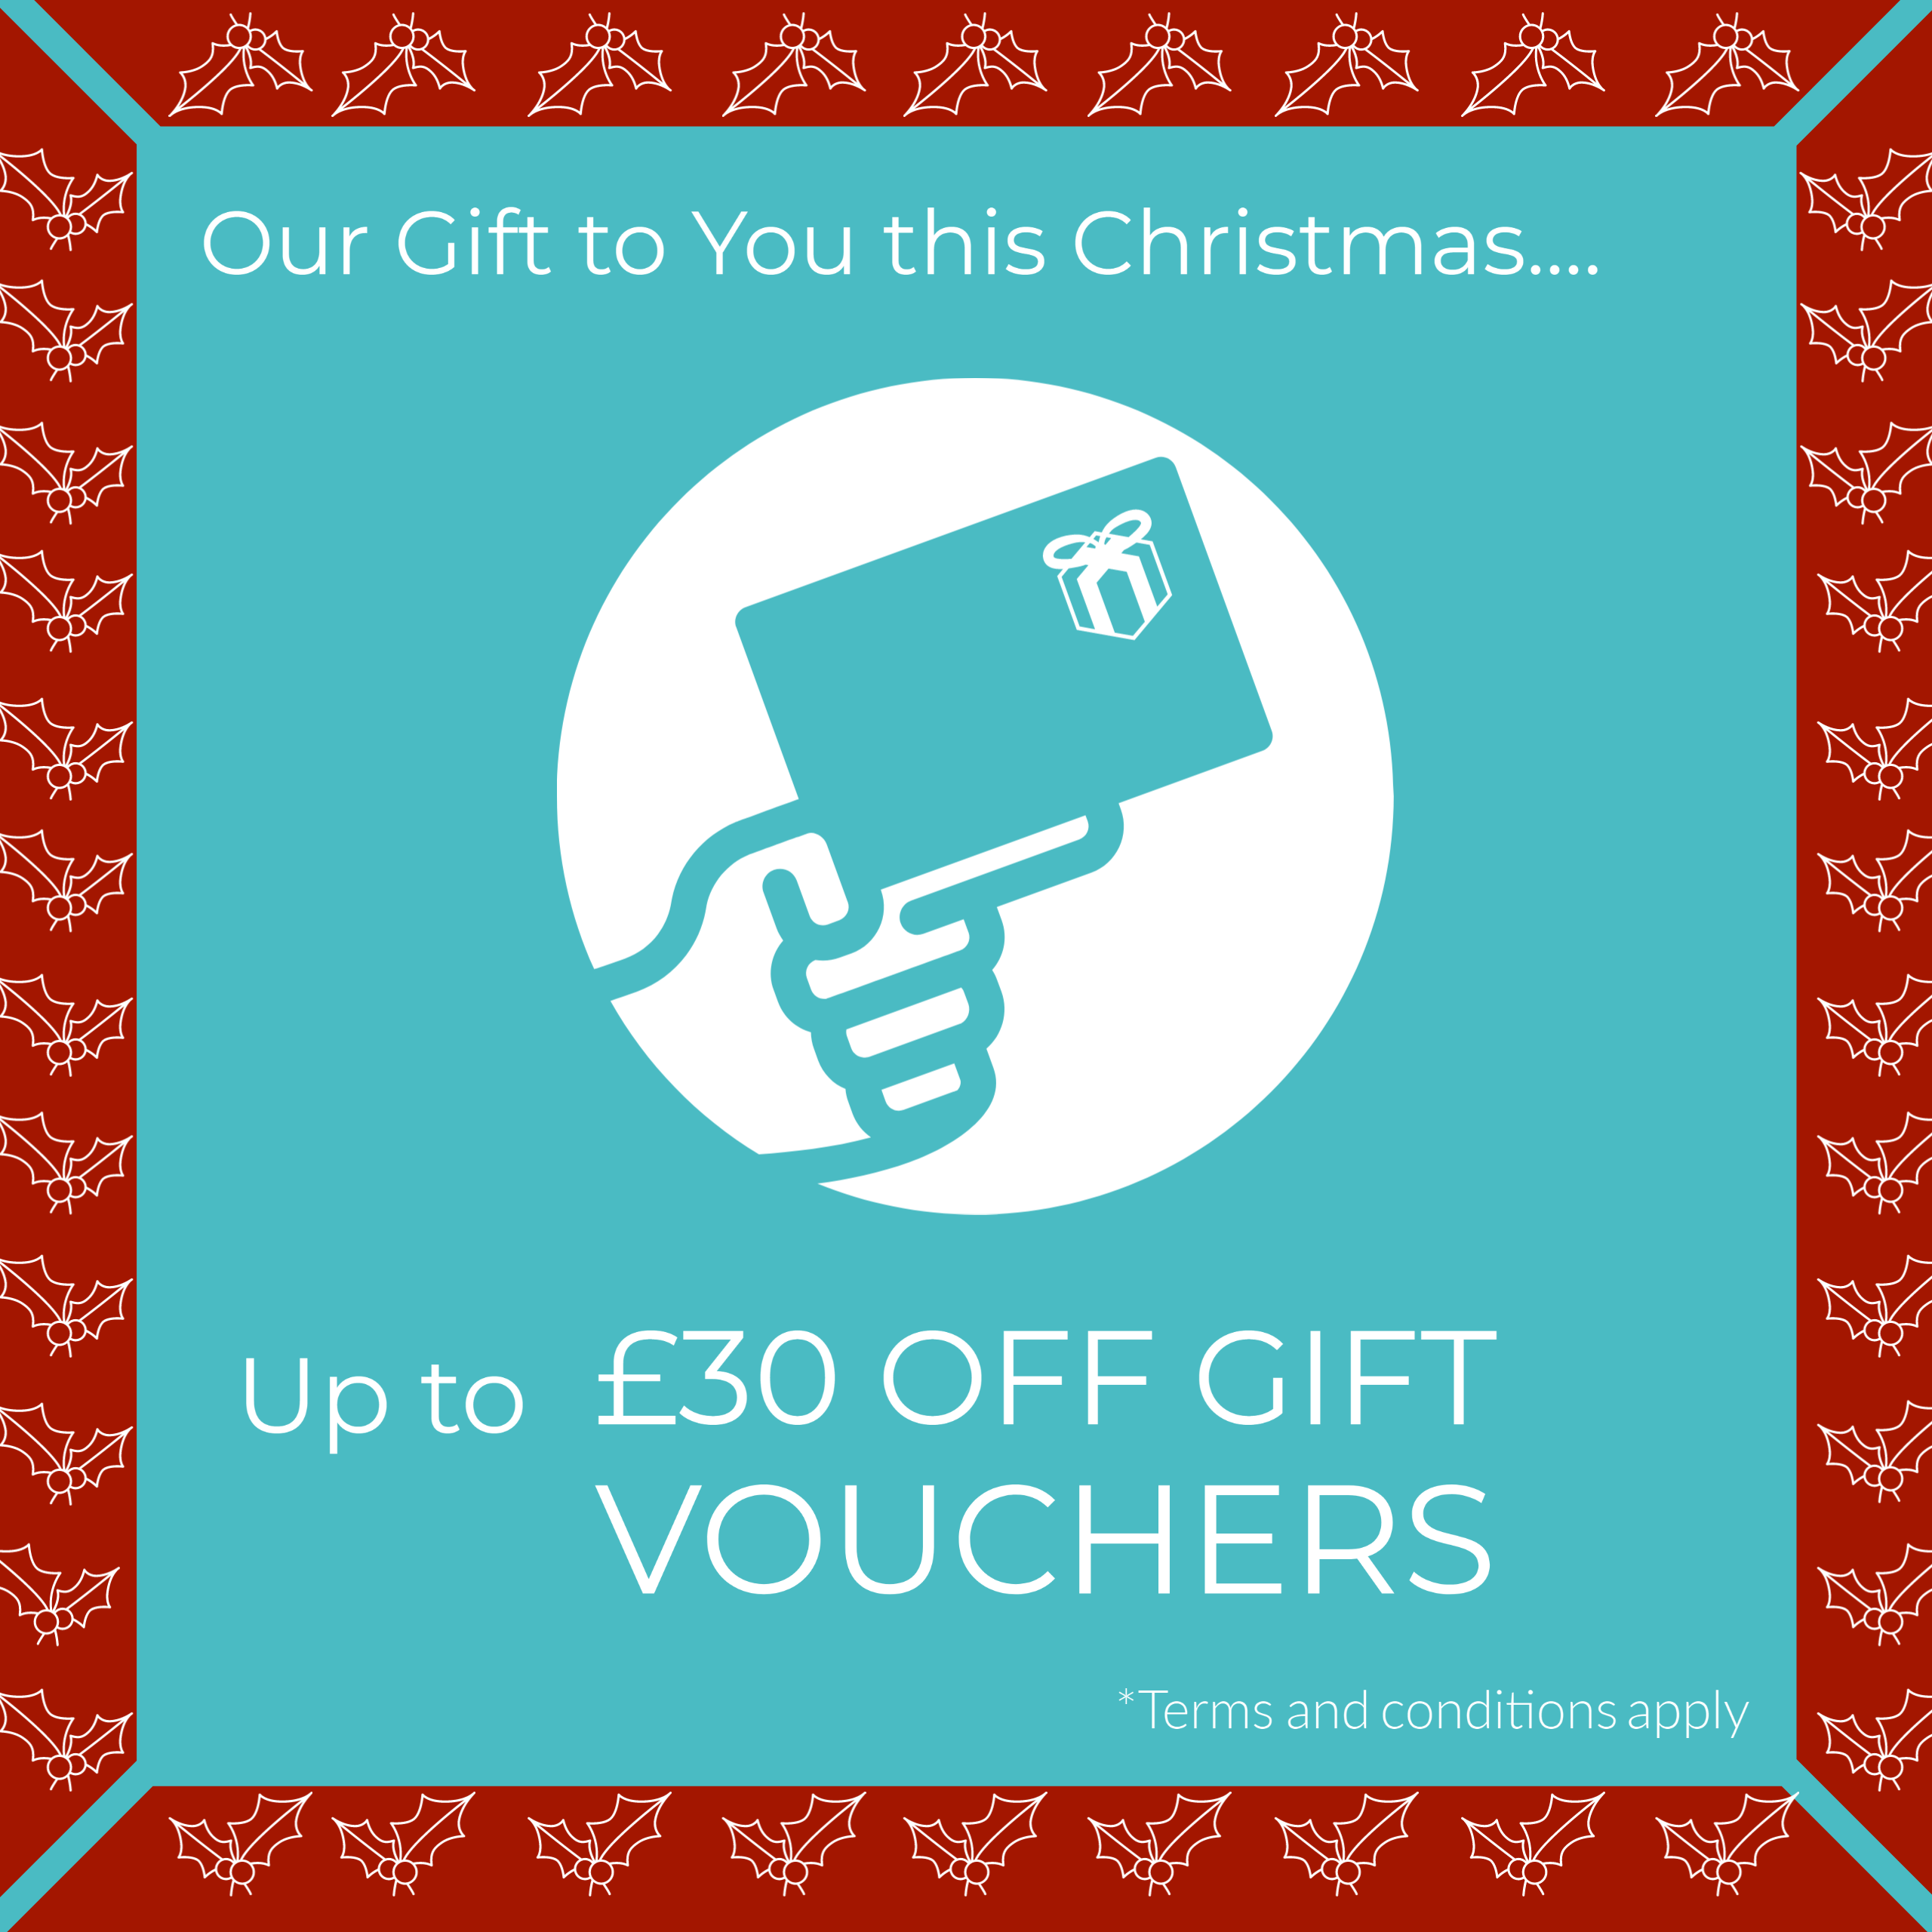 Save up to £30 on Gift Vouchers this Christmas